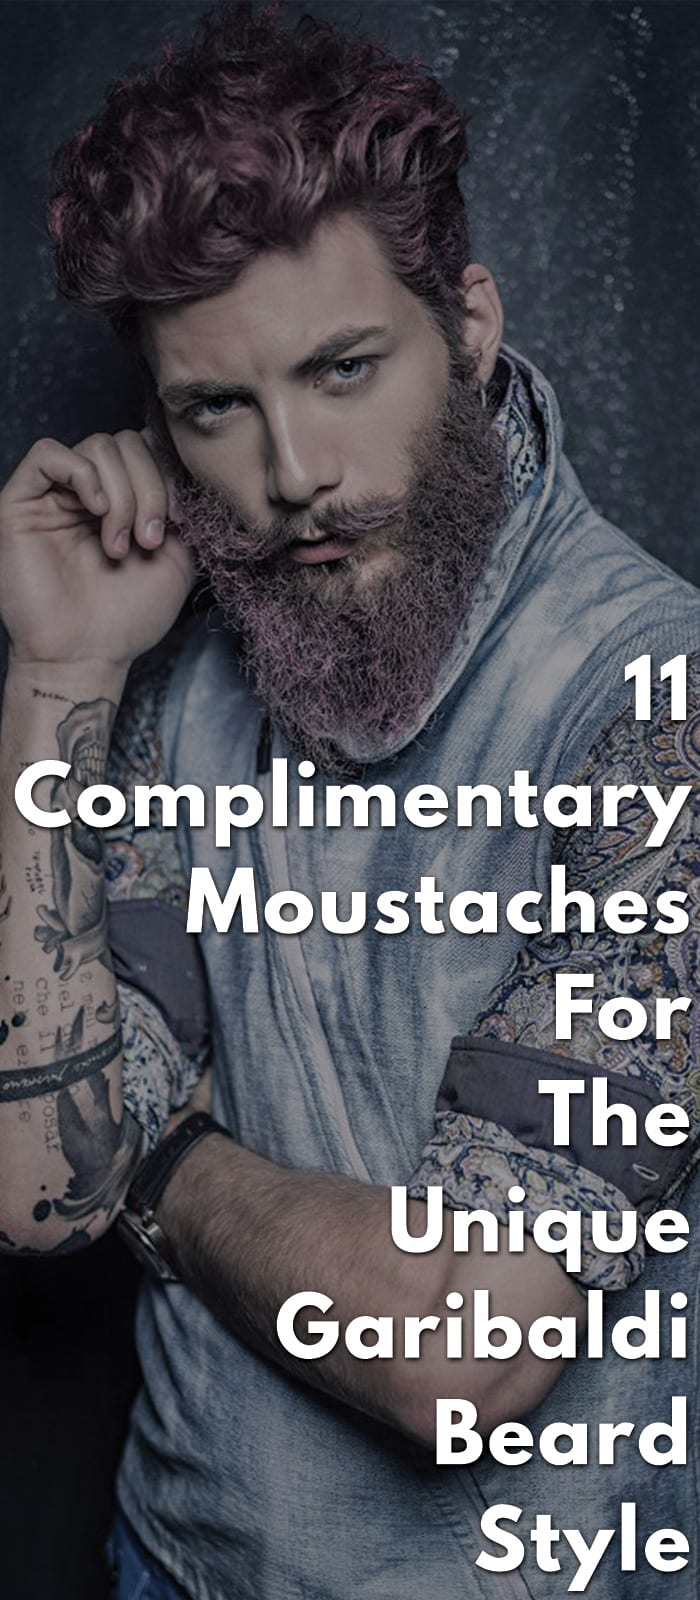 11-Complimentary-Moustaches-For-The-Unique-Garibaldi-Beard-Style